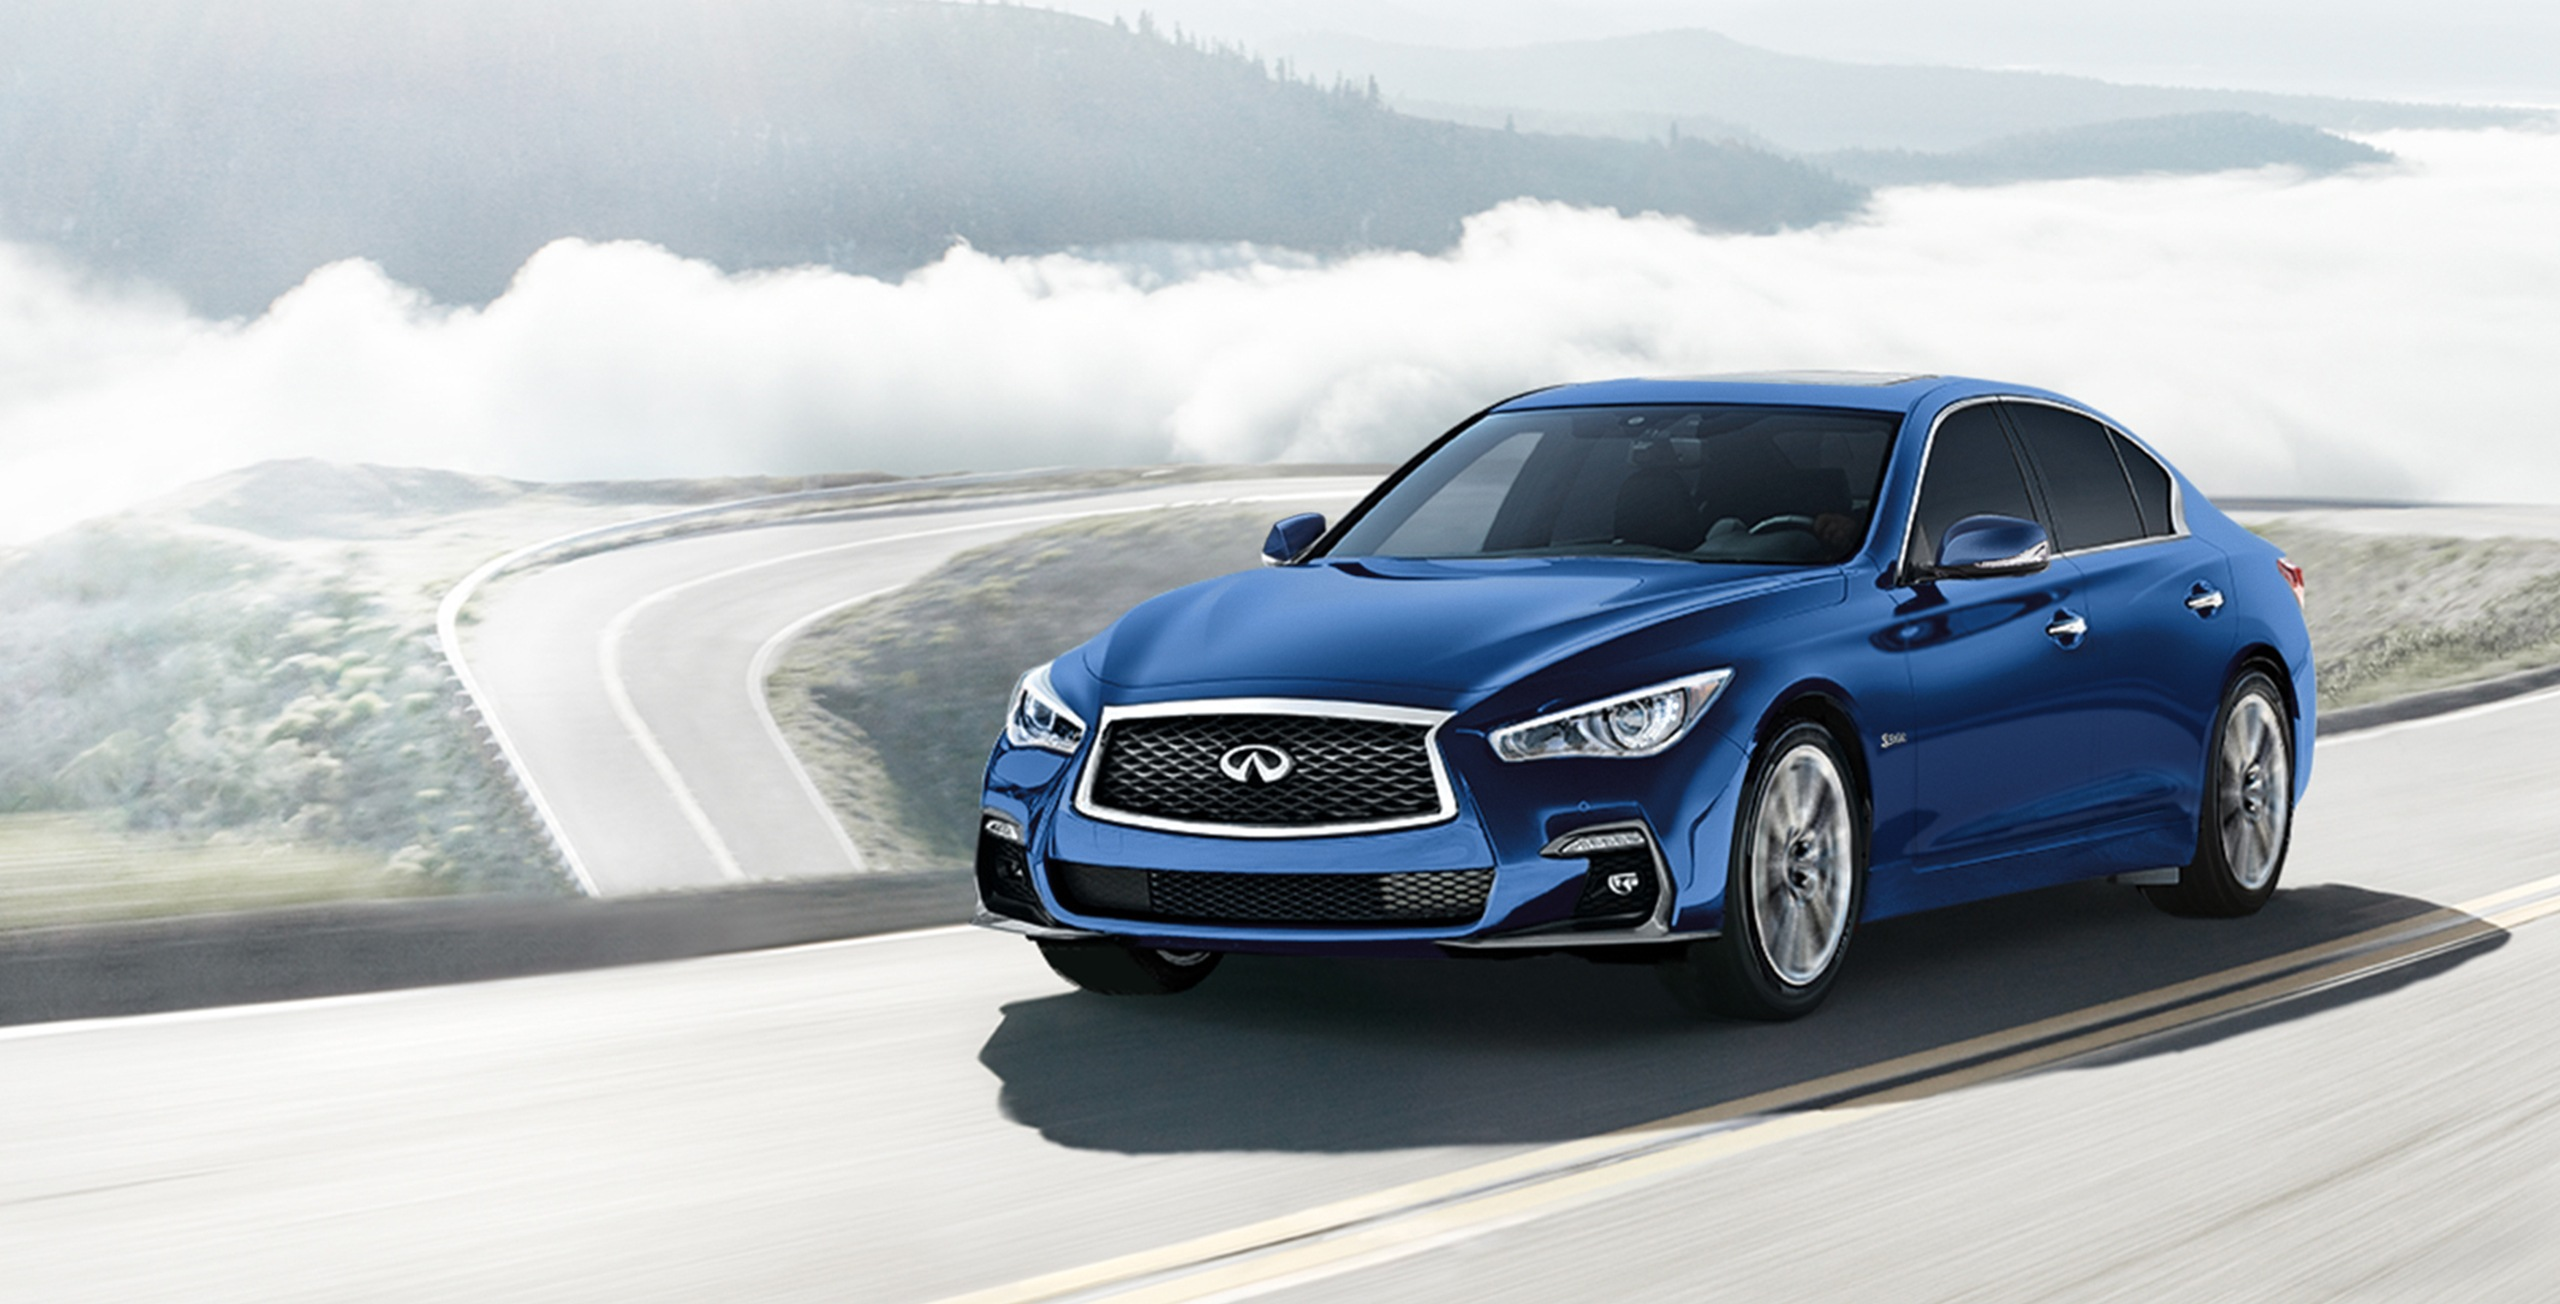 2019 Q50 AWD Signature Edition